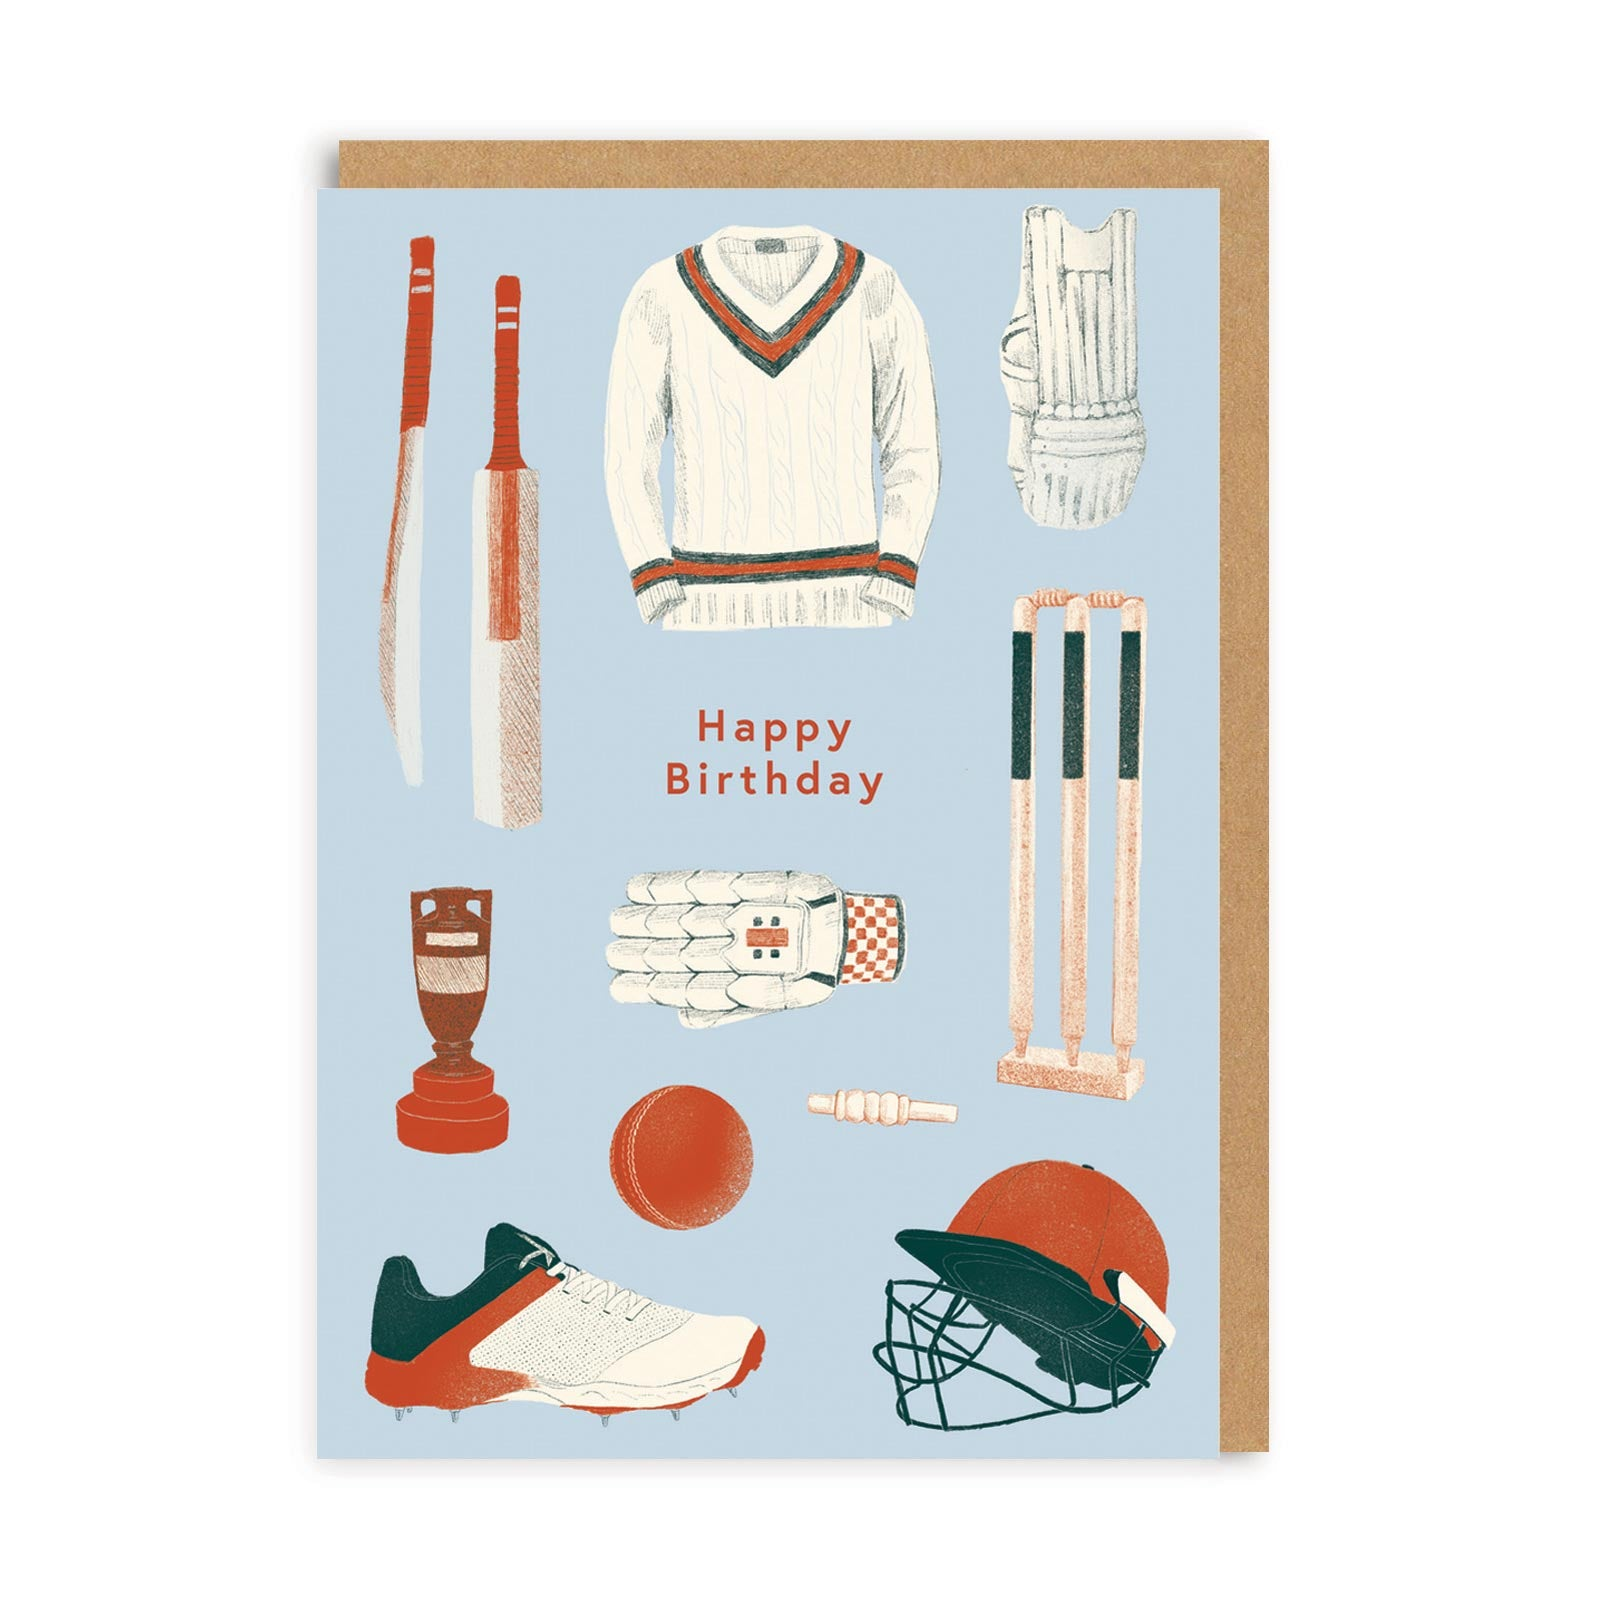 Happy Birthday Cricket Greeting Card